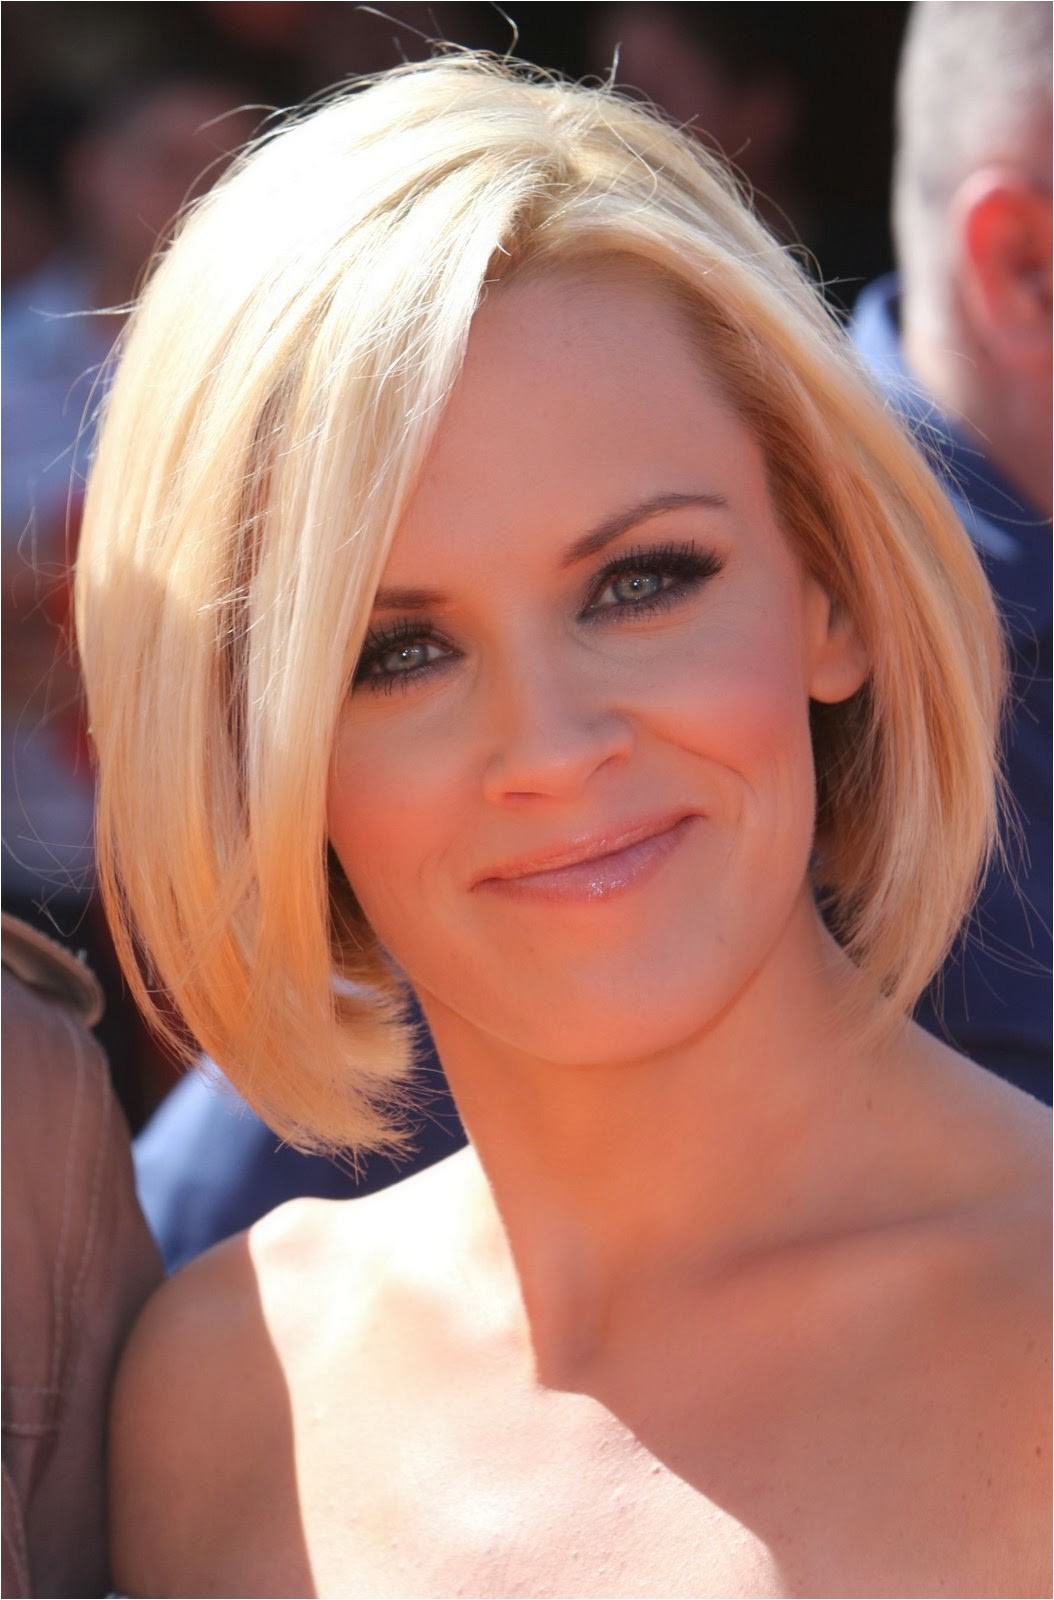 Pic Of Bob Haircuts the Most Popular Bob Hairstyles 2014